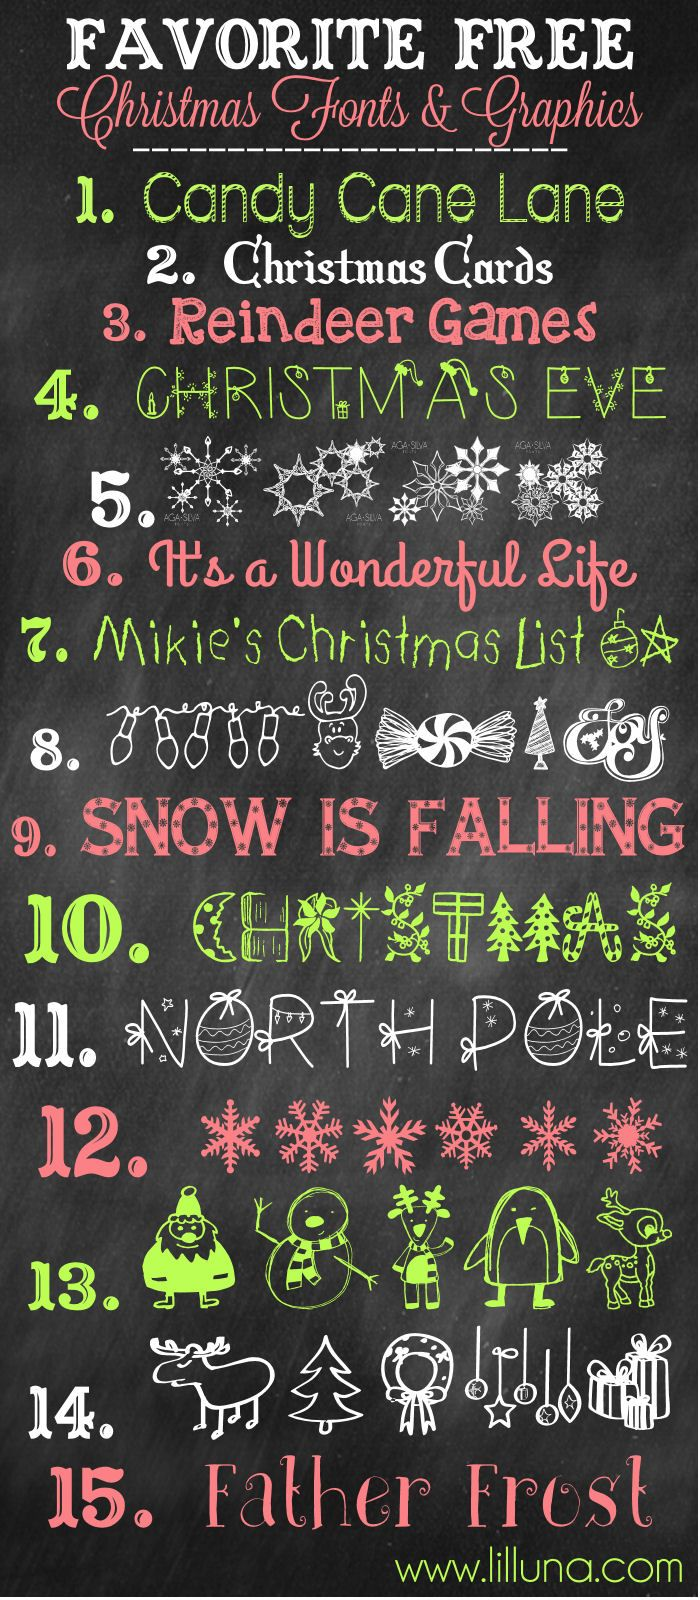 Favorite Free Christmas Fonts and Graphics to download and use { lilluna.com }